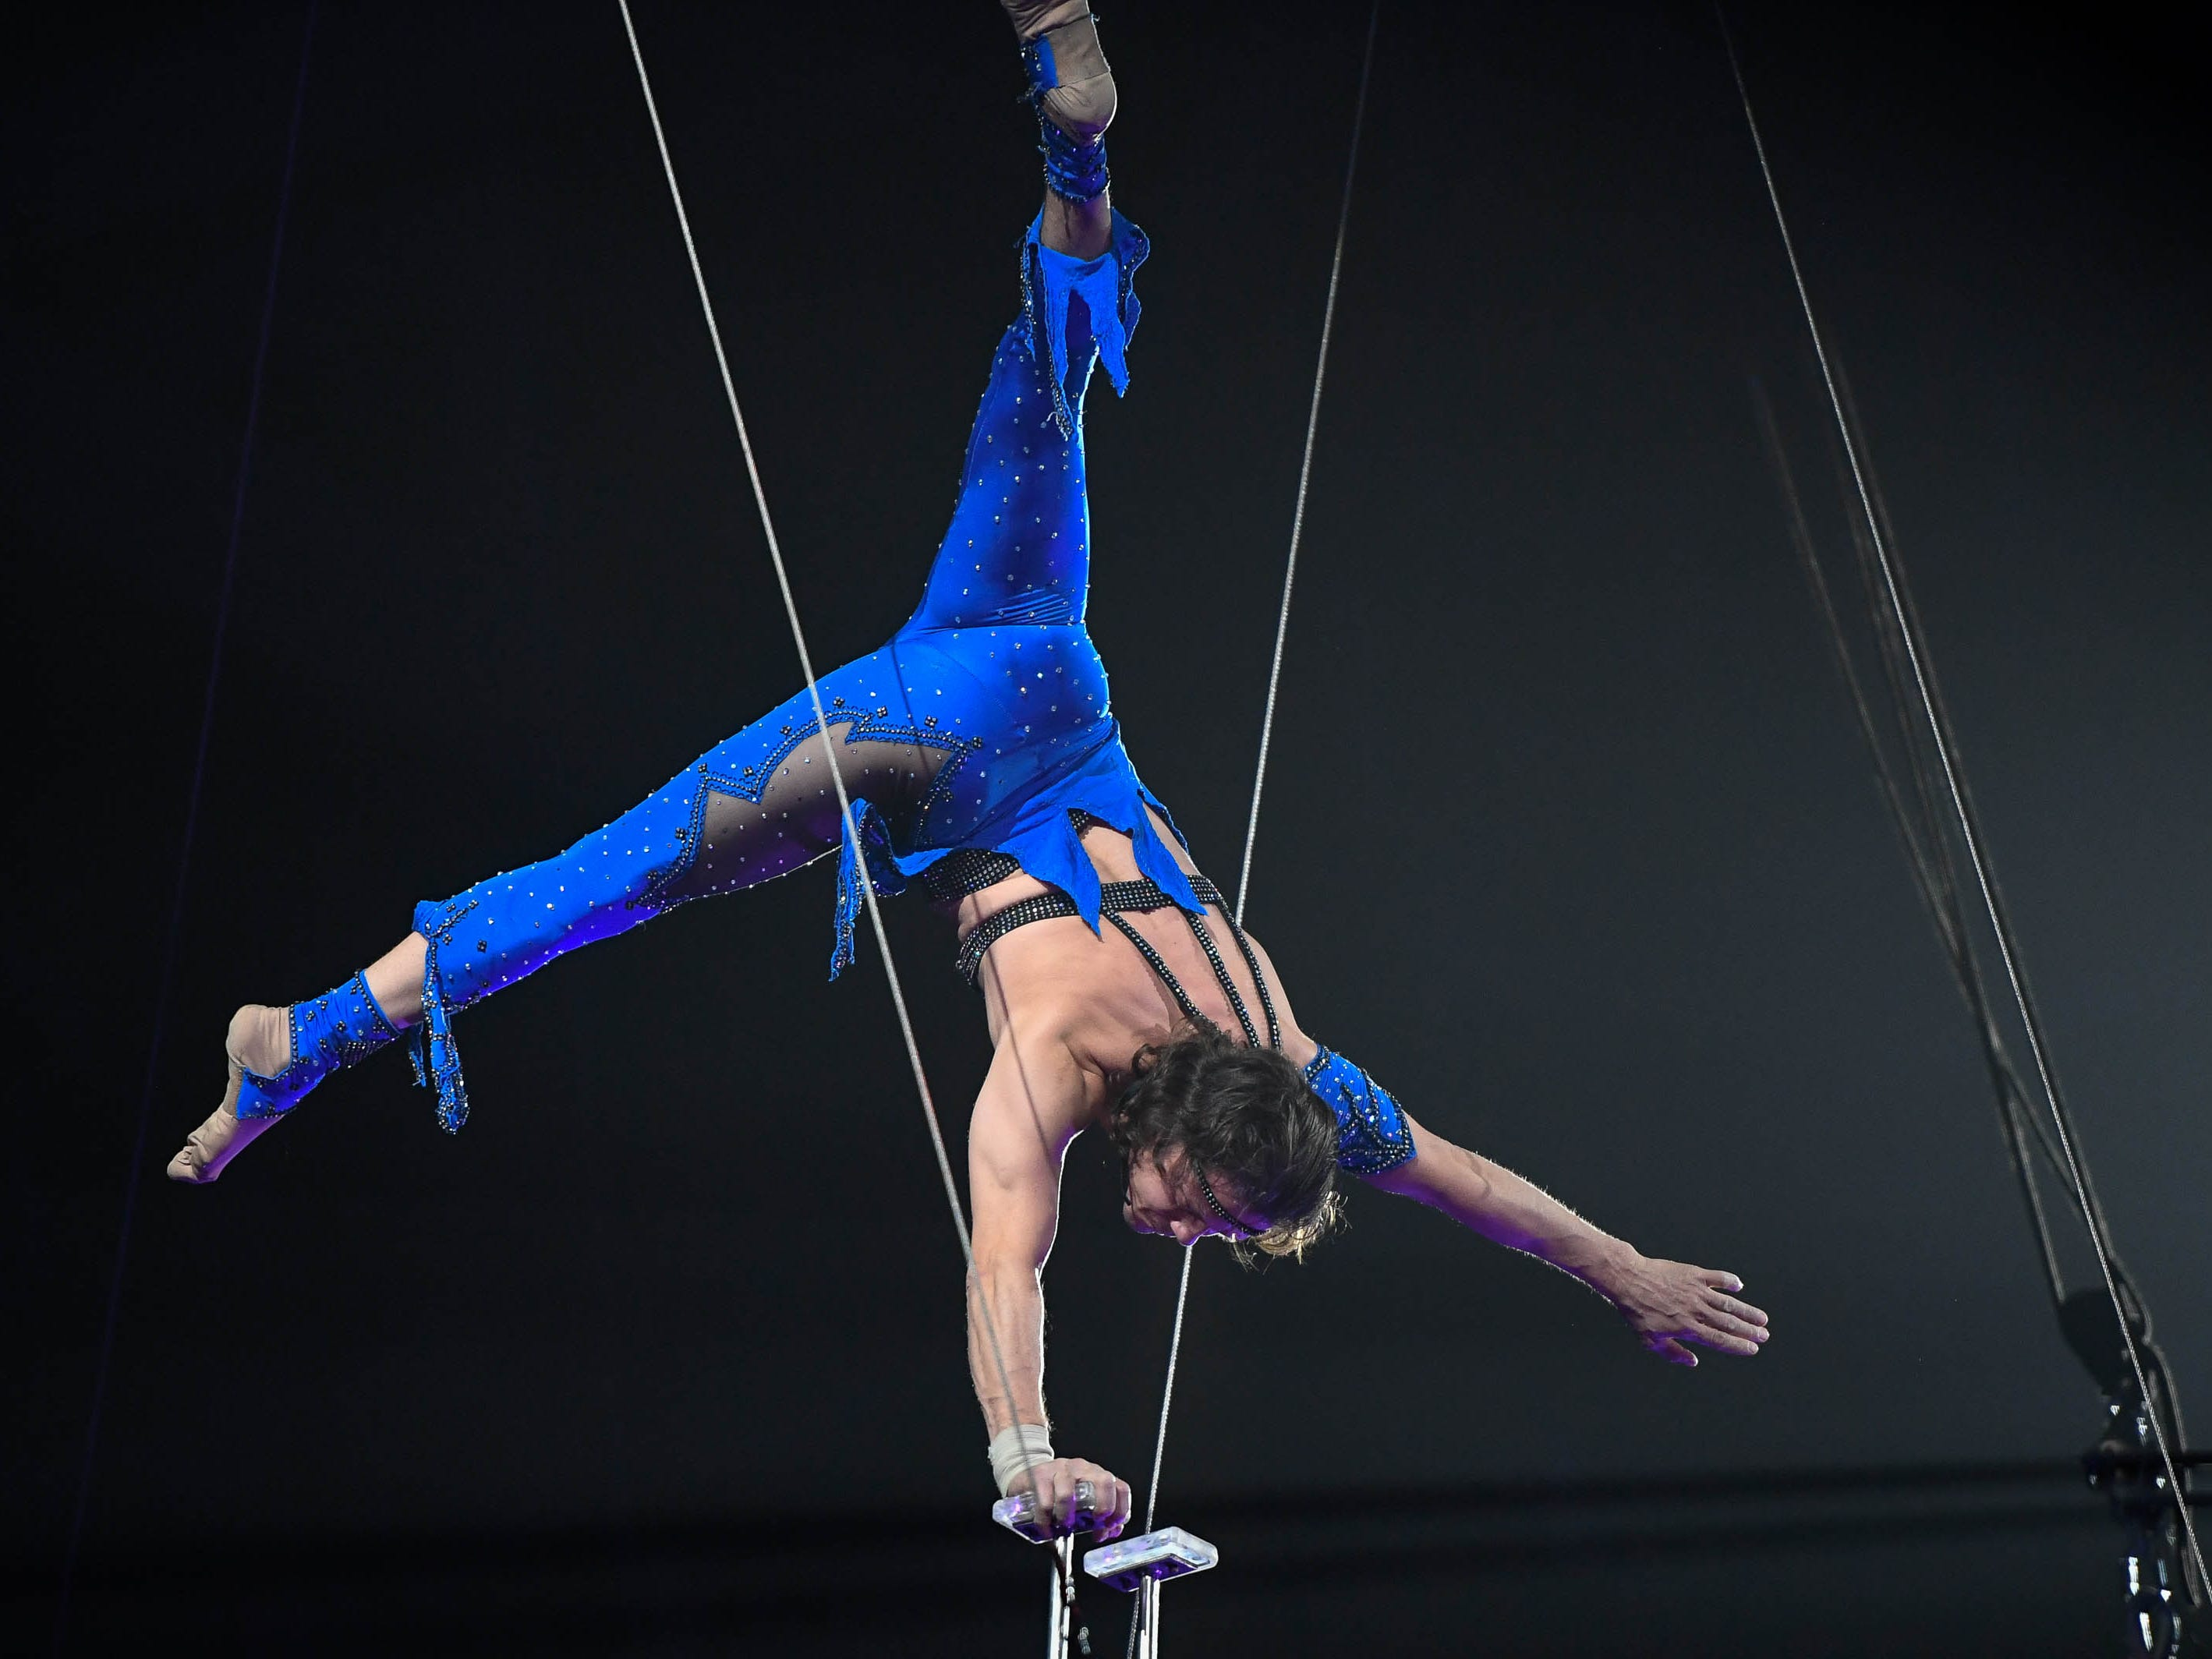 German Fassio preforms hand stands high the air at the Ford Center during the 85th annual Hadi Shrine Circus Friday, November 23, 2018.